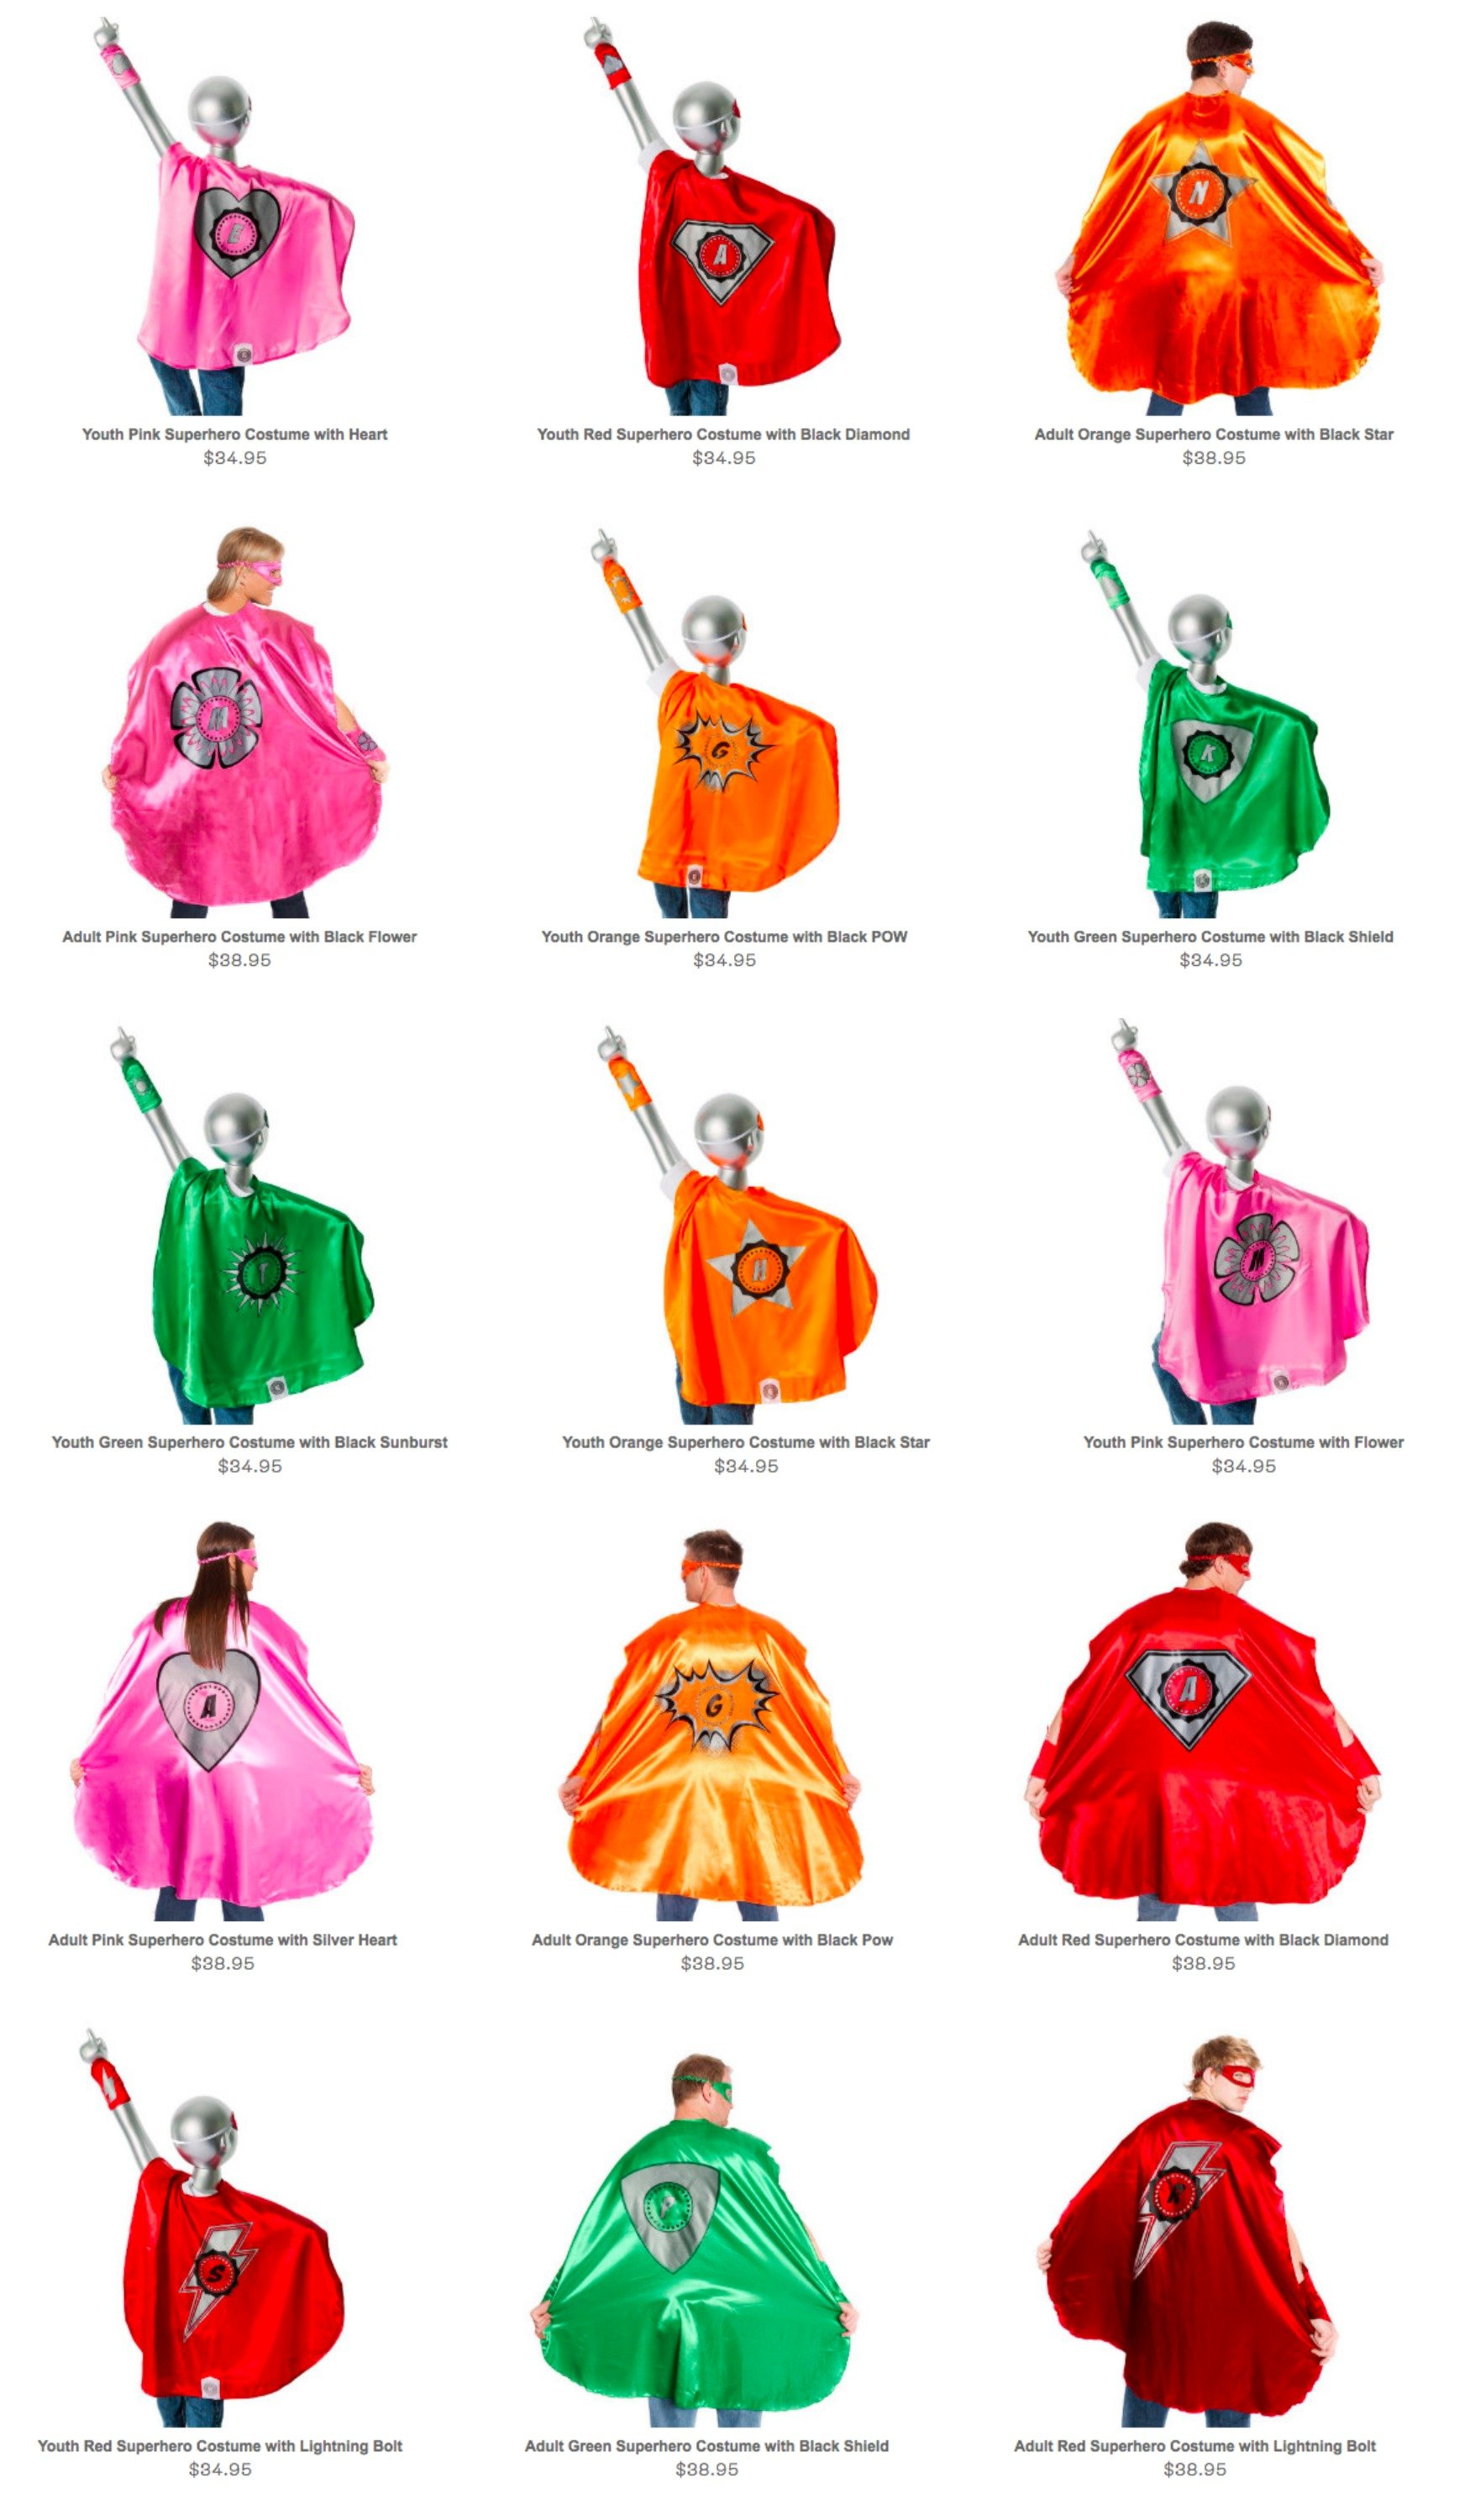 Superhero Capes for the Whole Family